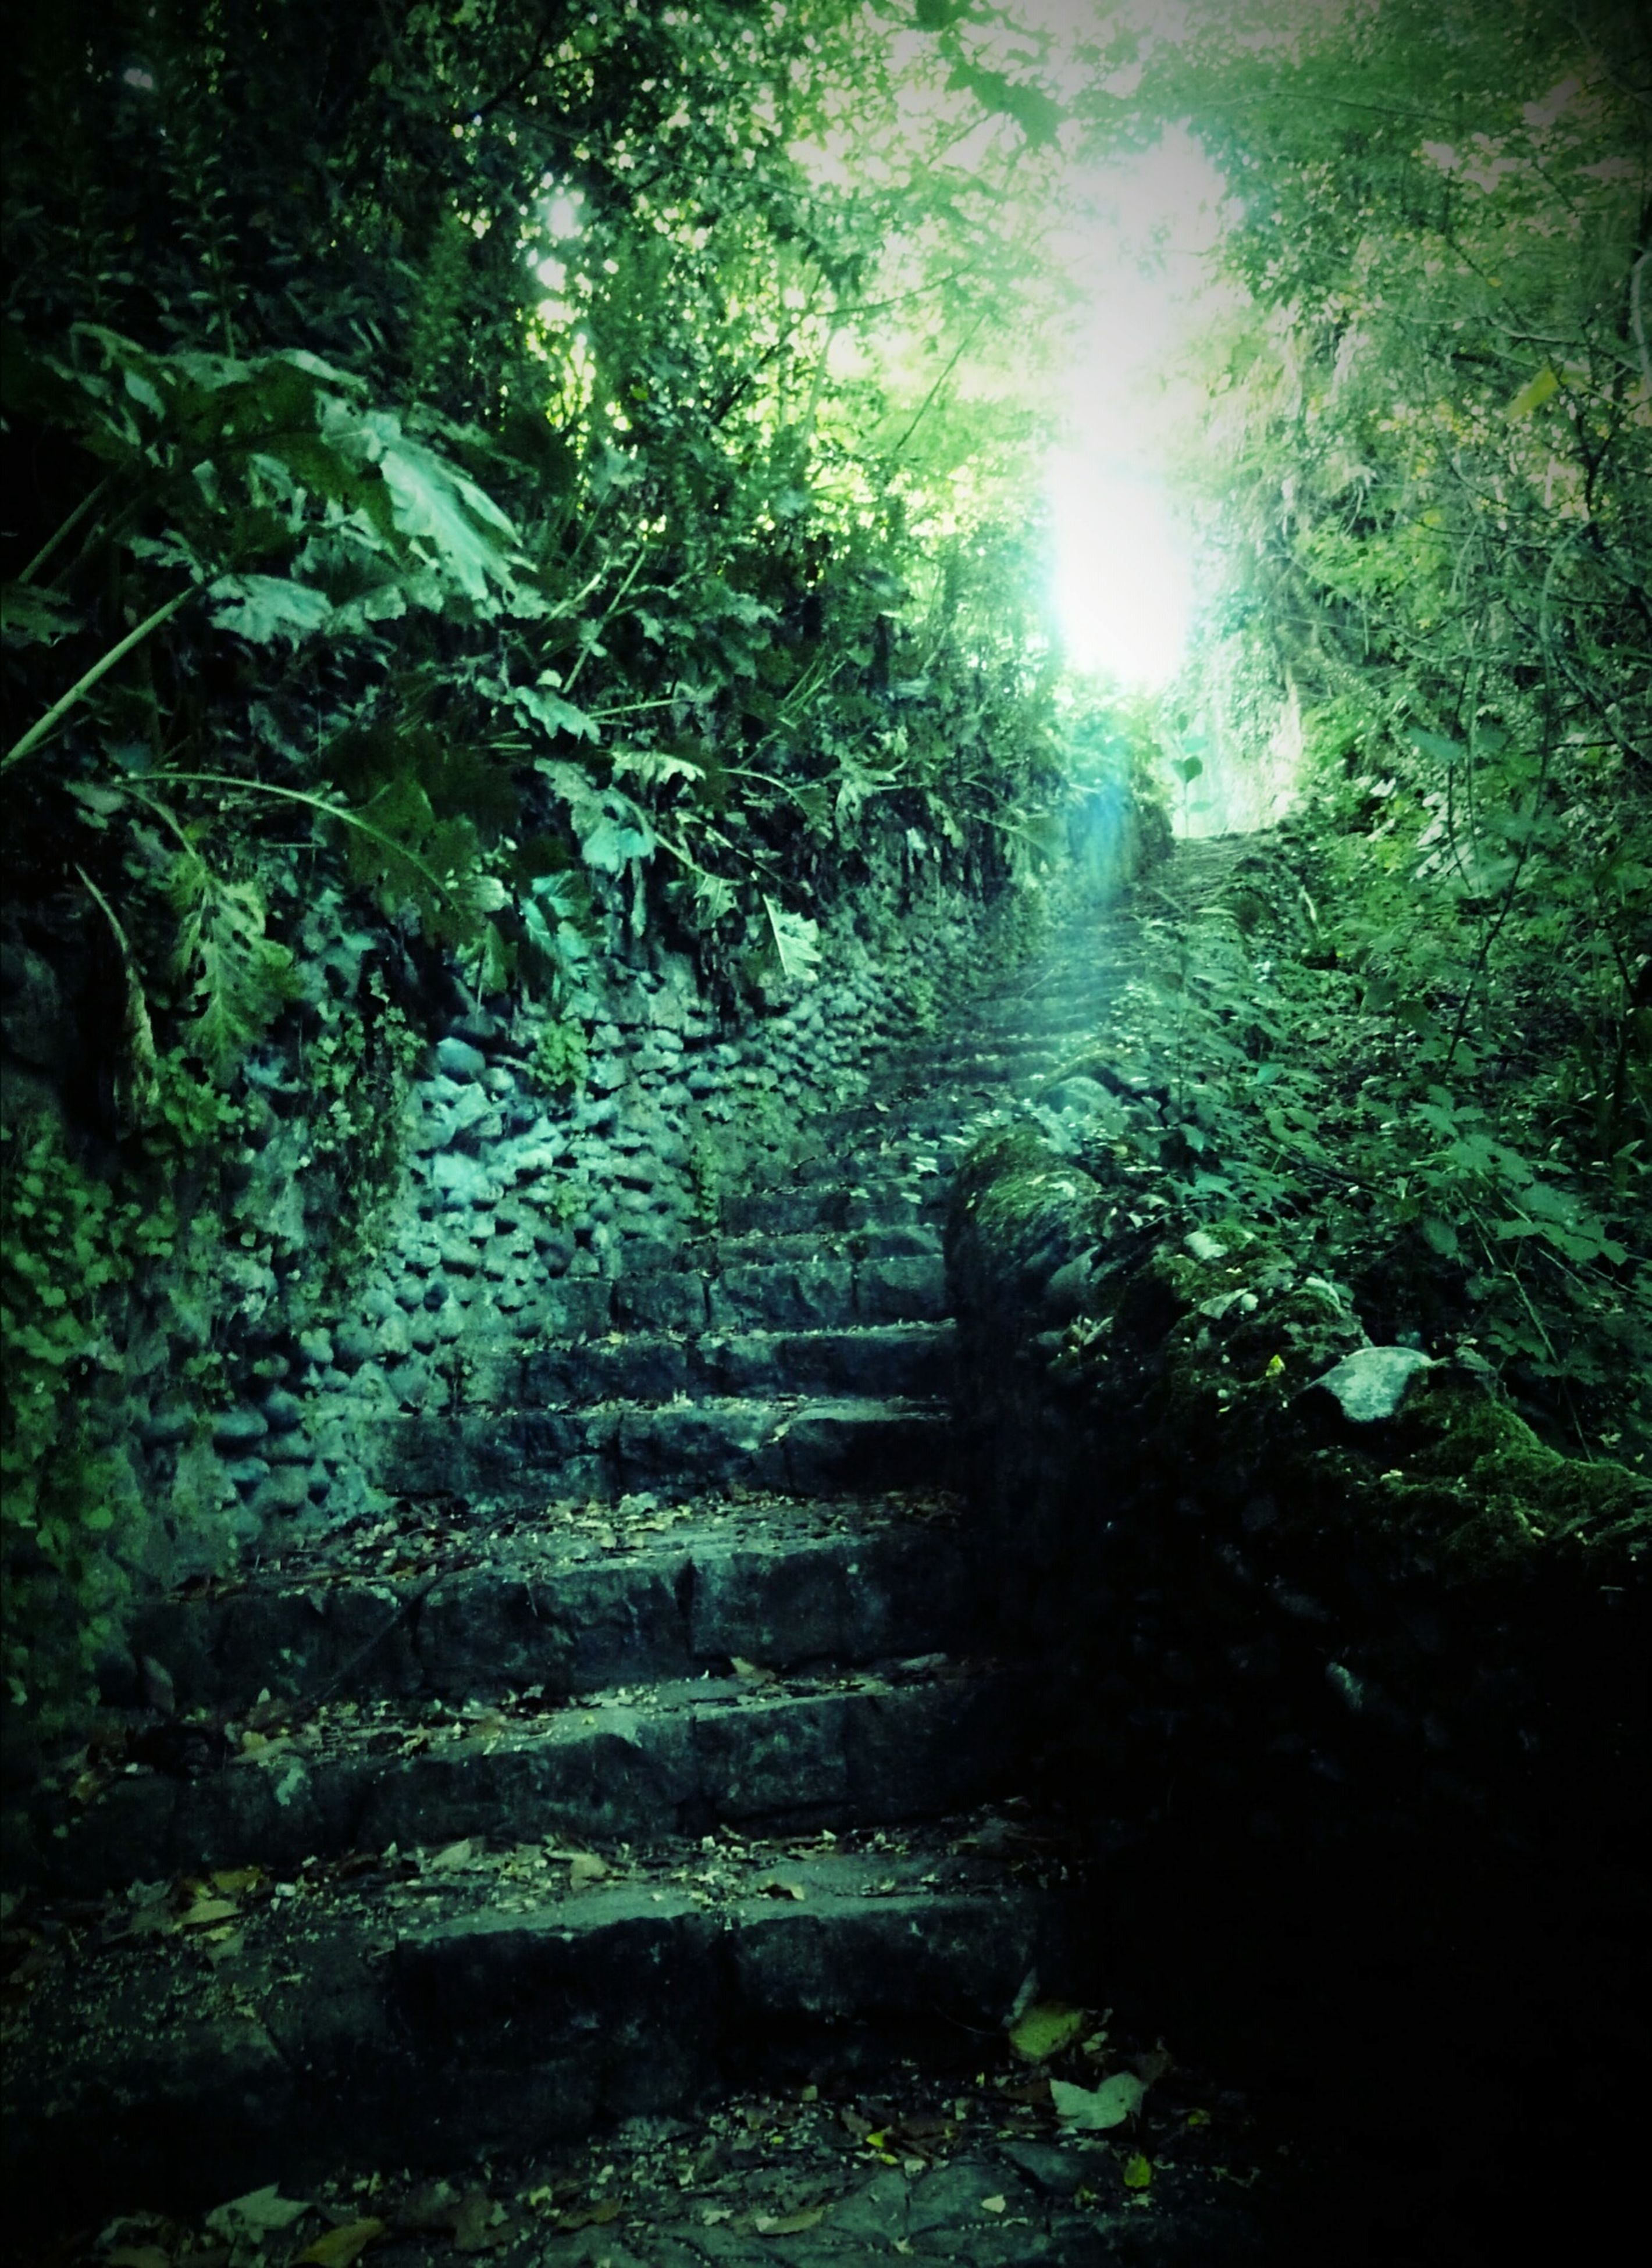 tree, steps, the way forward, forest, growth, tranquil scene, tranquility, plant, staircase, nature, scenics, green color, outdoors, day, footpath, solitude, narrow, non-urban scene, beauty in nature, lush foliage, long, woods, no people, green